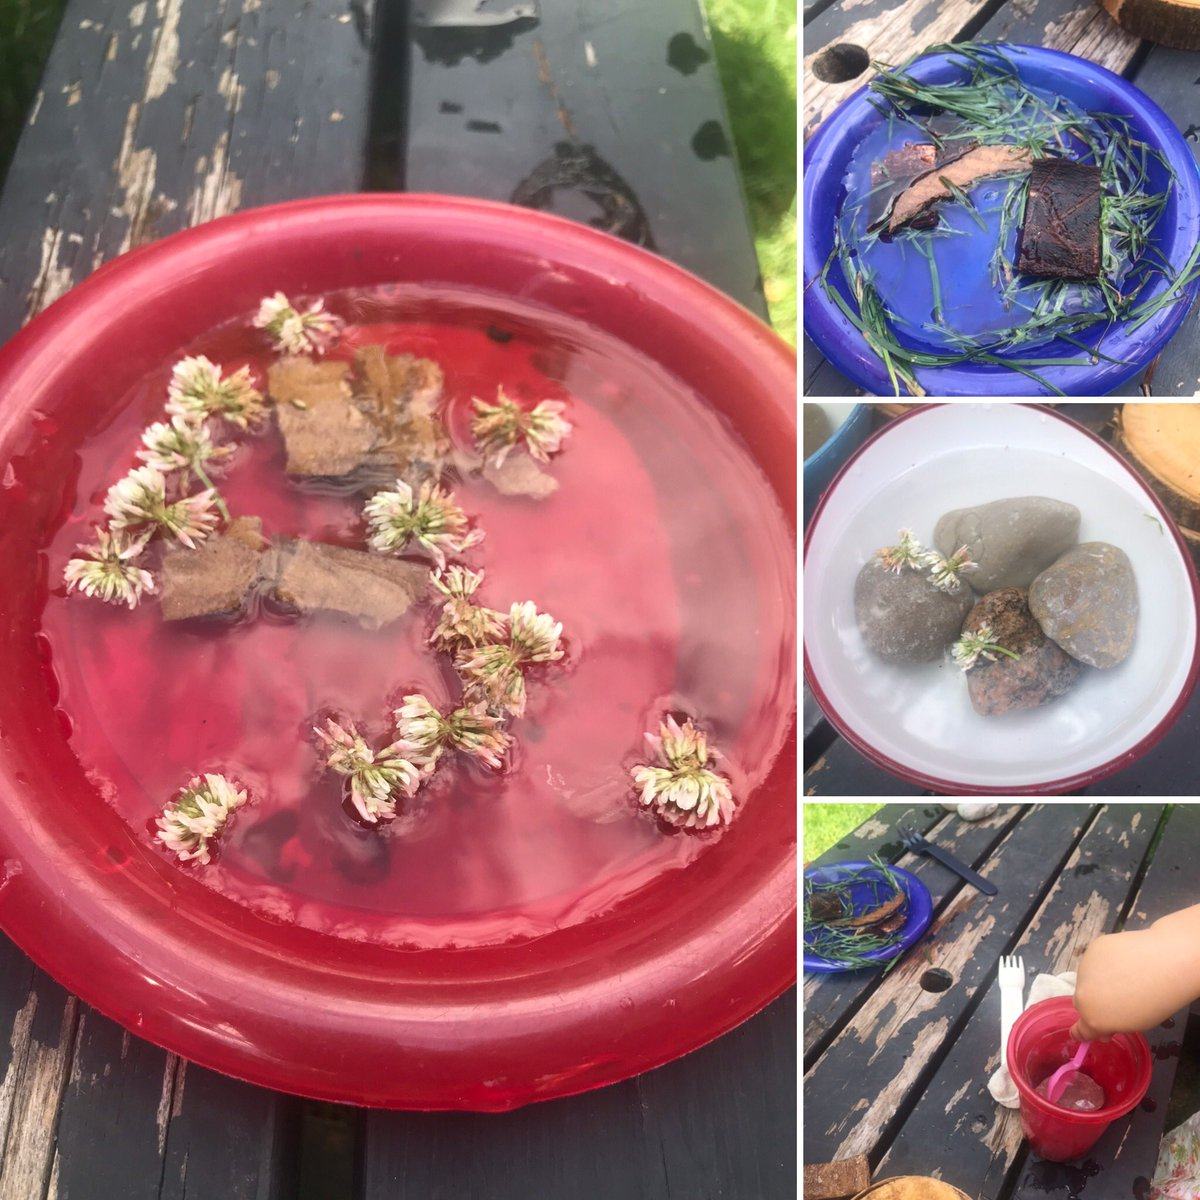 Natural loose parts are free & can inspire a great deal of creativity in children.  Would you like a blackberry cappaciuno? Or potato stew? How about pasta with meat chunks? #outdoorplay #stem #homeschool #homeschooling #homeschoolmom #creativekids  #looseparts #loosepartsplaypic.twitter.com/57ls4aV9oE